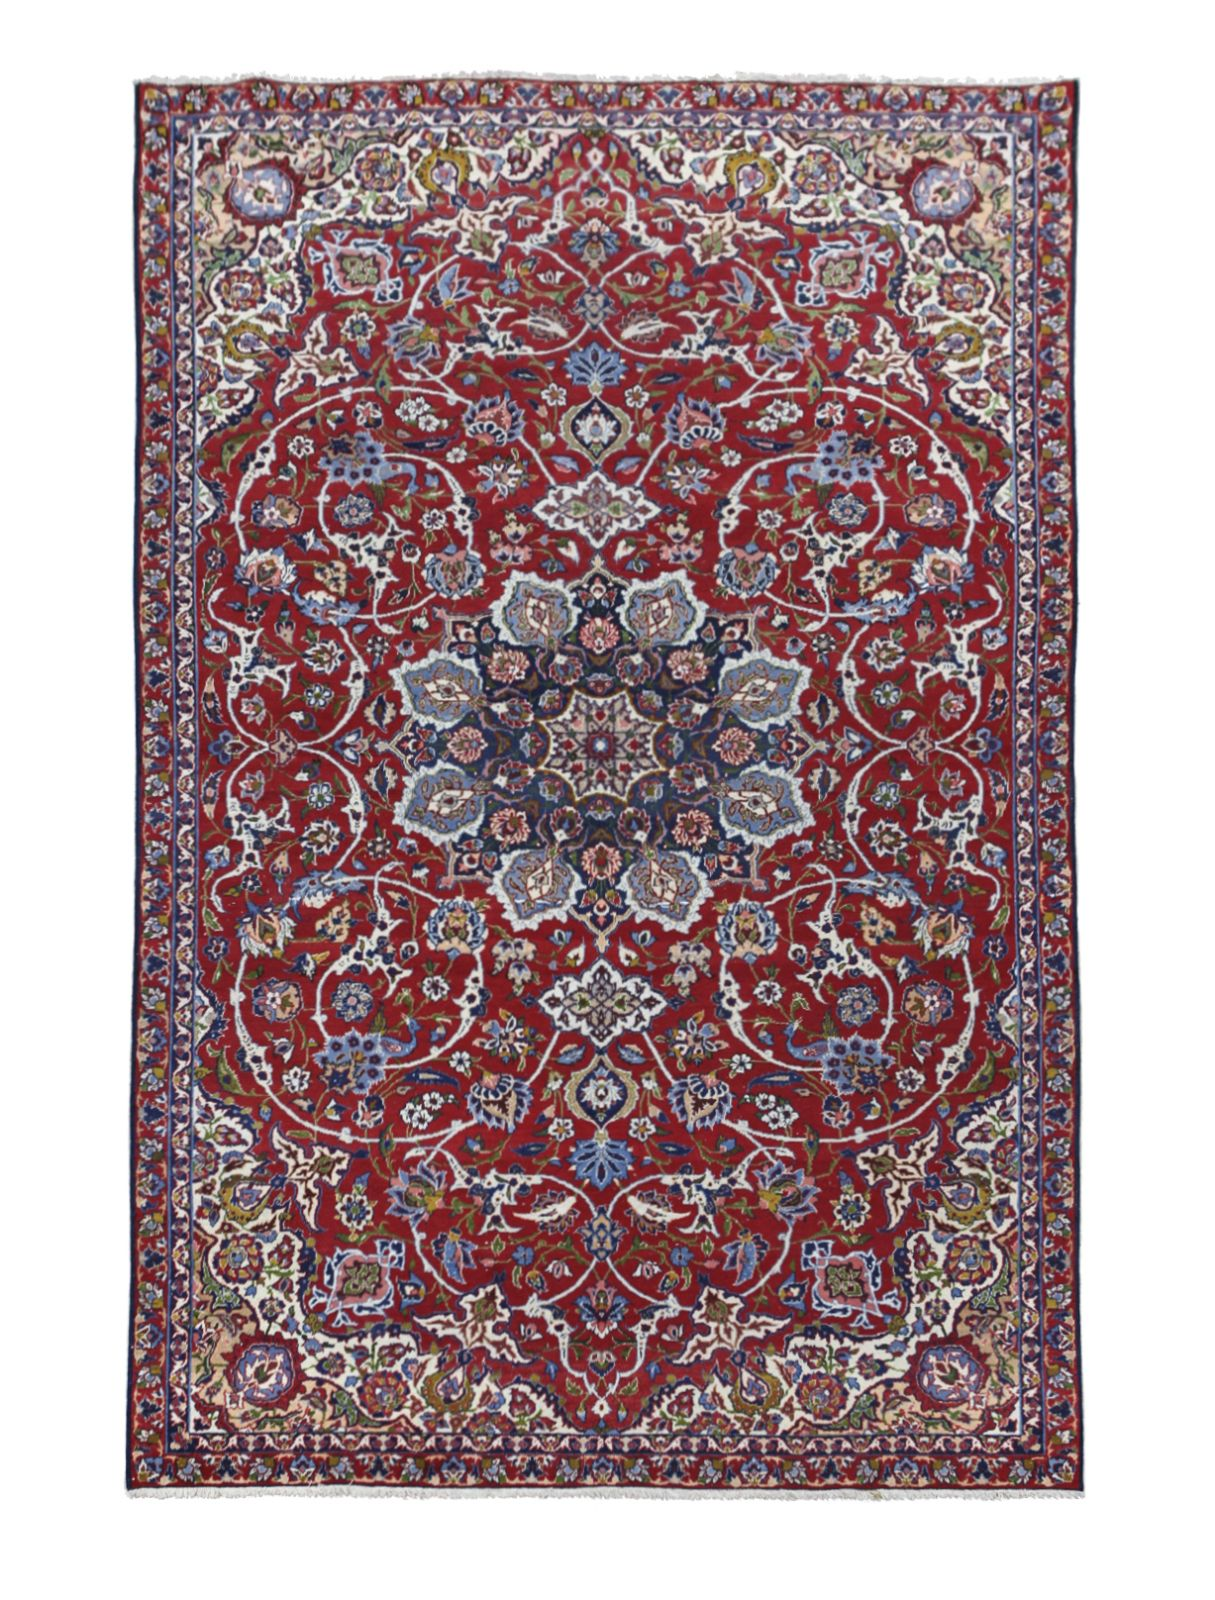 #88 Isfahan wool carpet, 1920-1930 | Isfahan Woll-Teppich, 1920-1930 Image